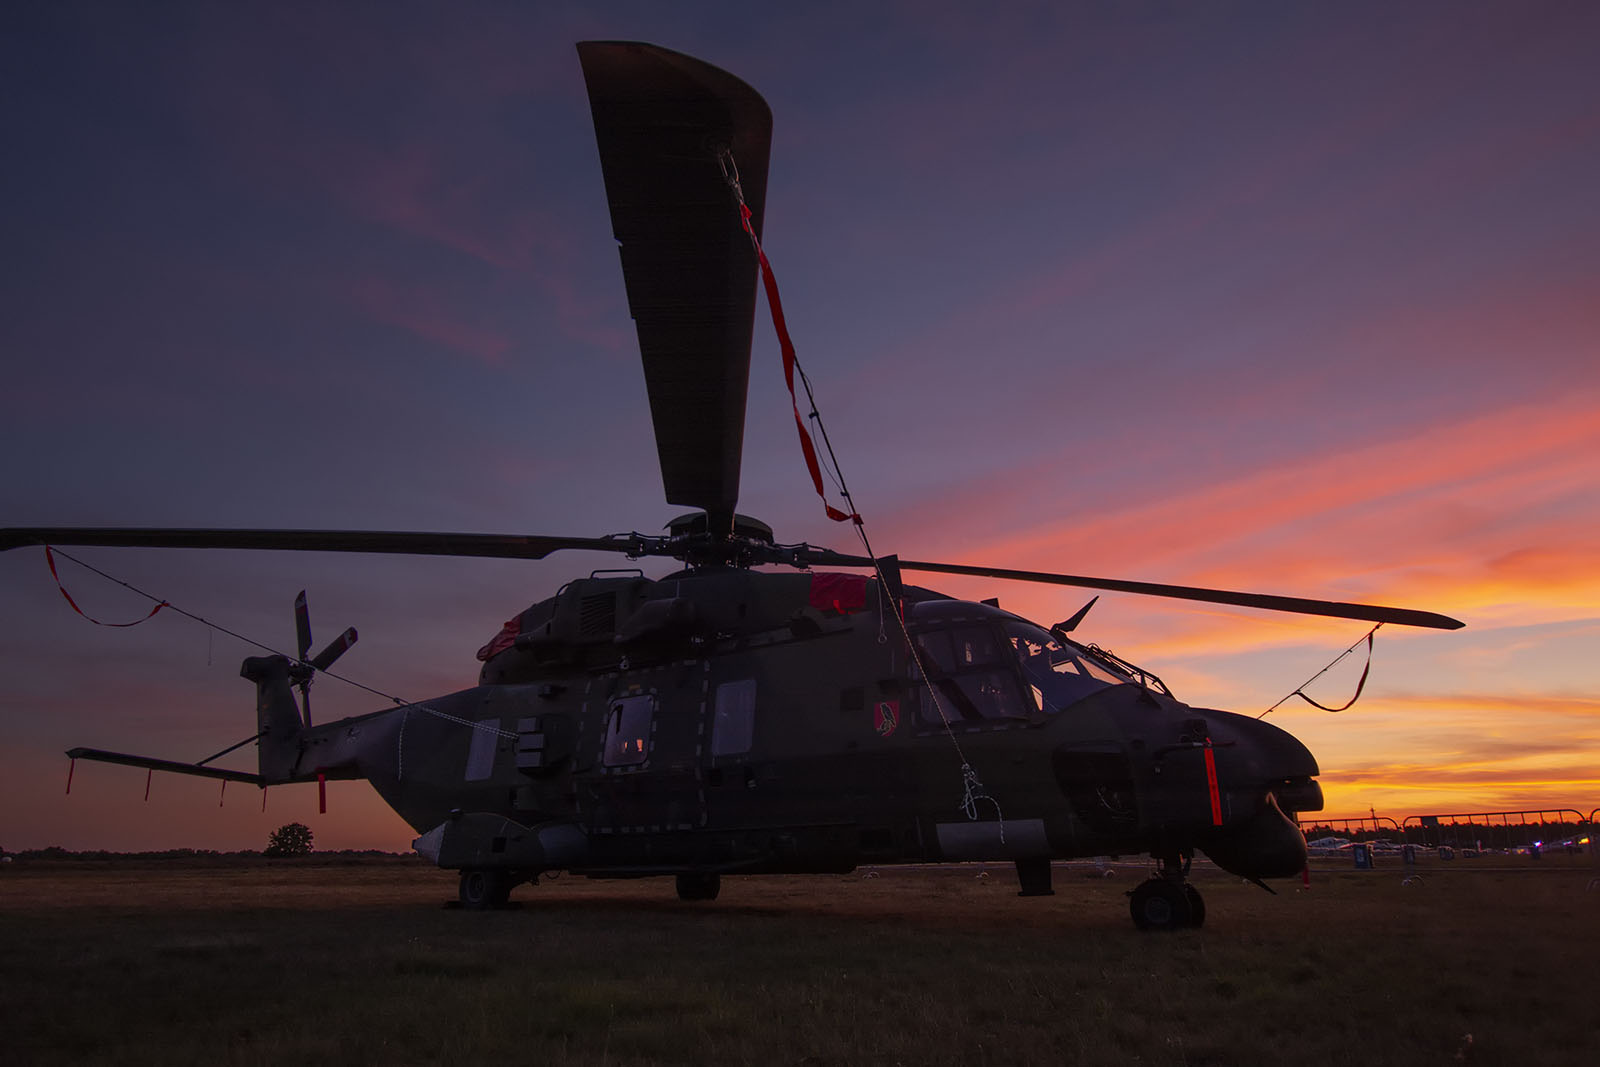 Sunset-Airshow-13Sep19-Andrew